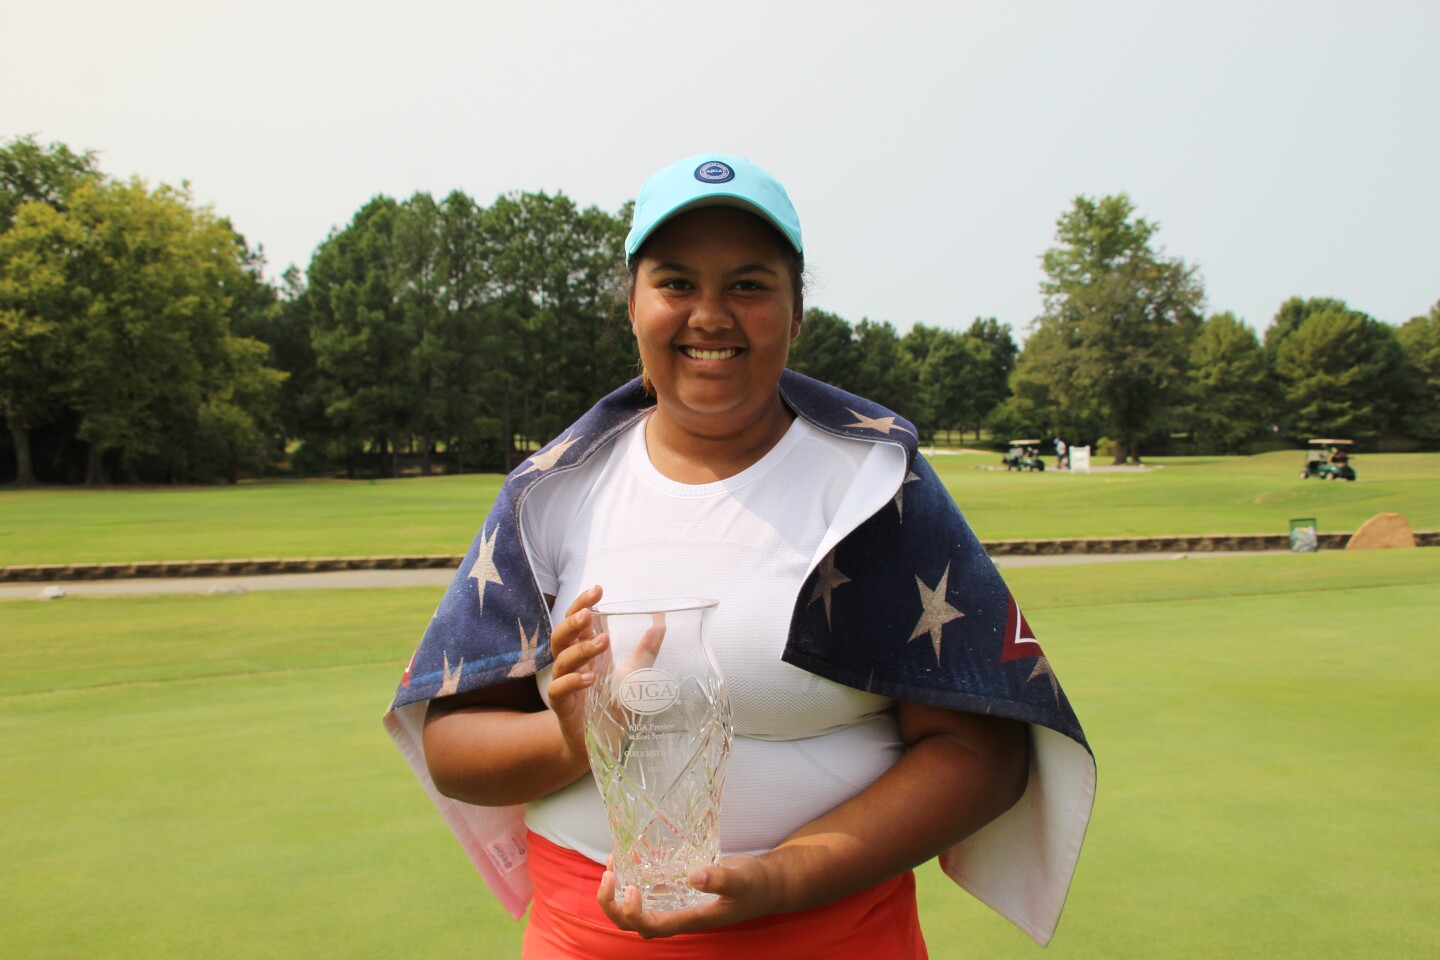 Kasey Maralack Champ Picture - 2020 - AJGA Preview at Lost Springs.JPG